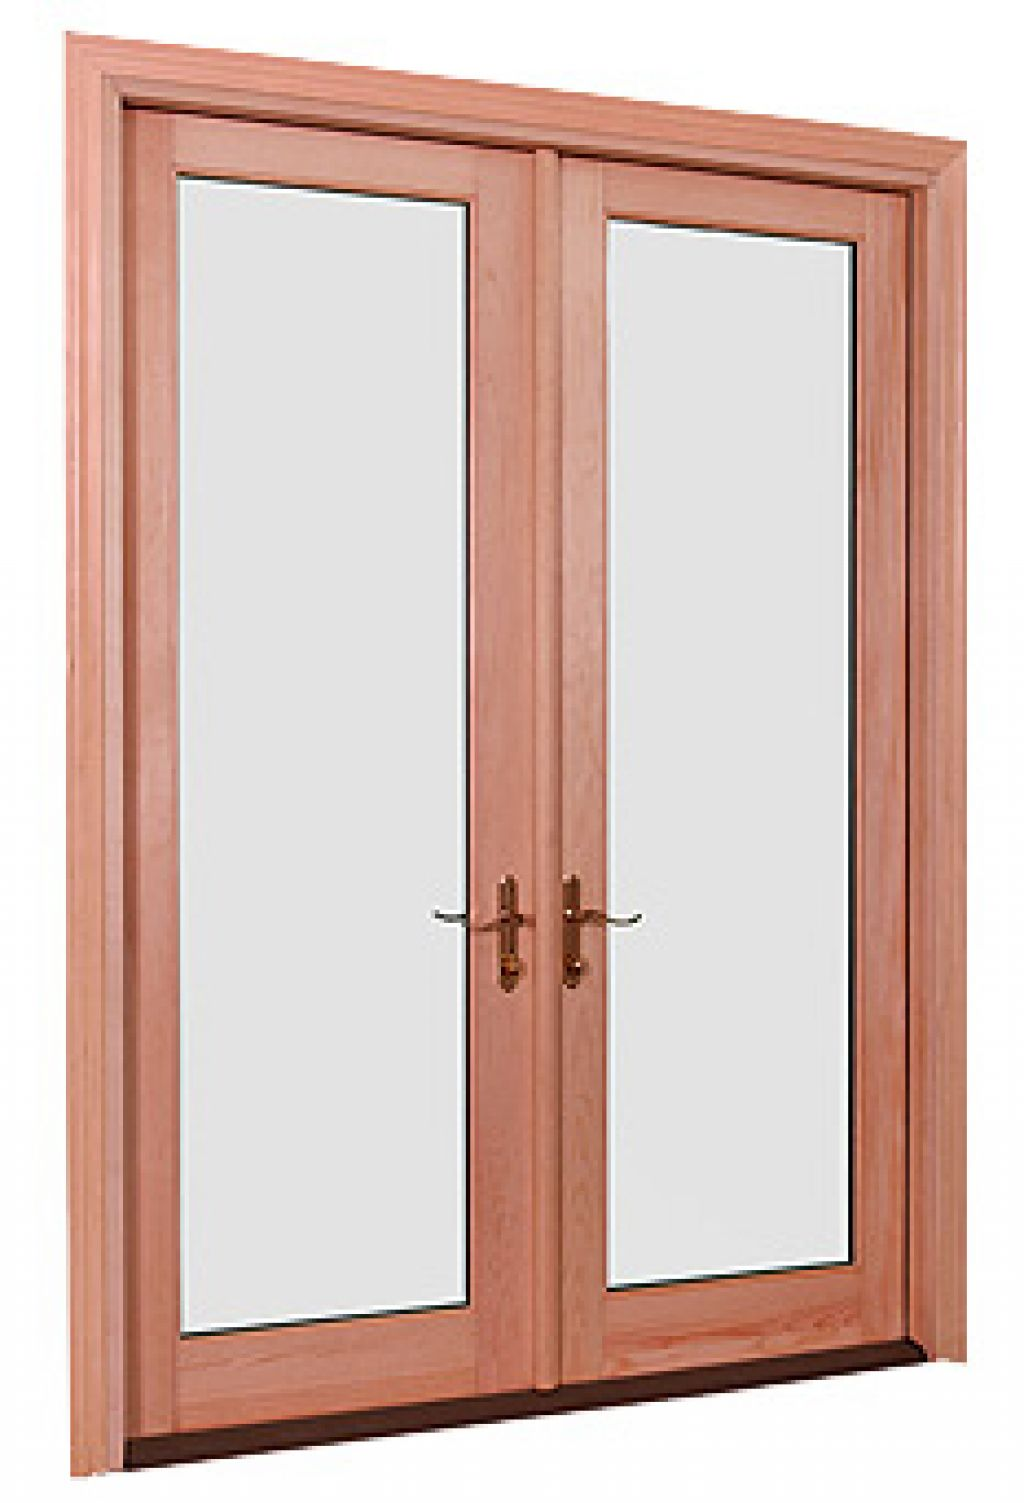 20 reasons to install french doors exterior andersen for Small exterior french doors